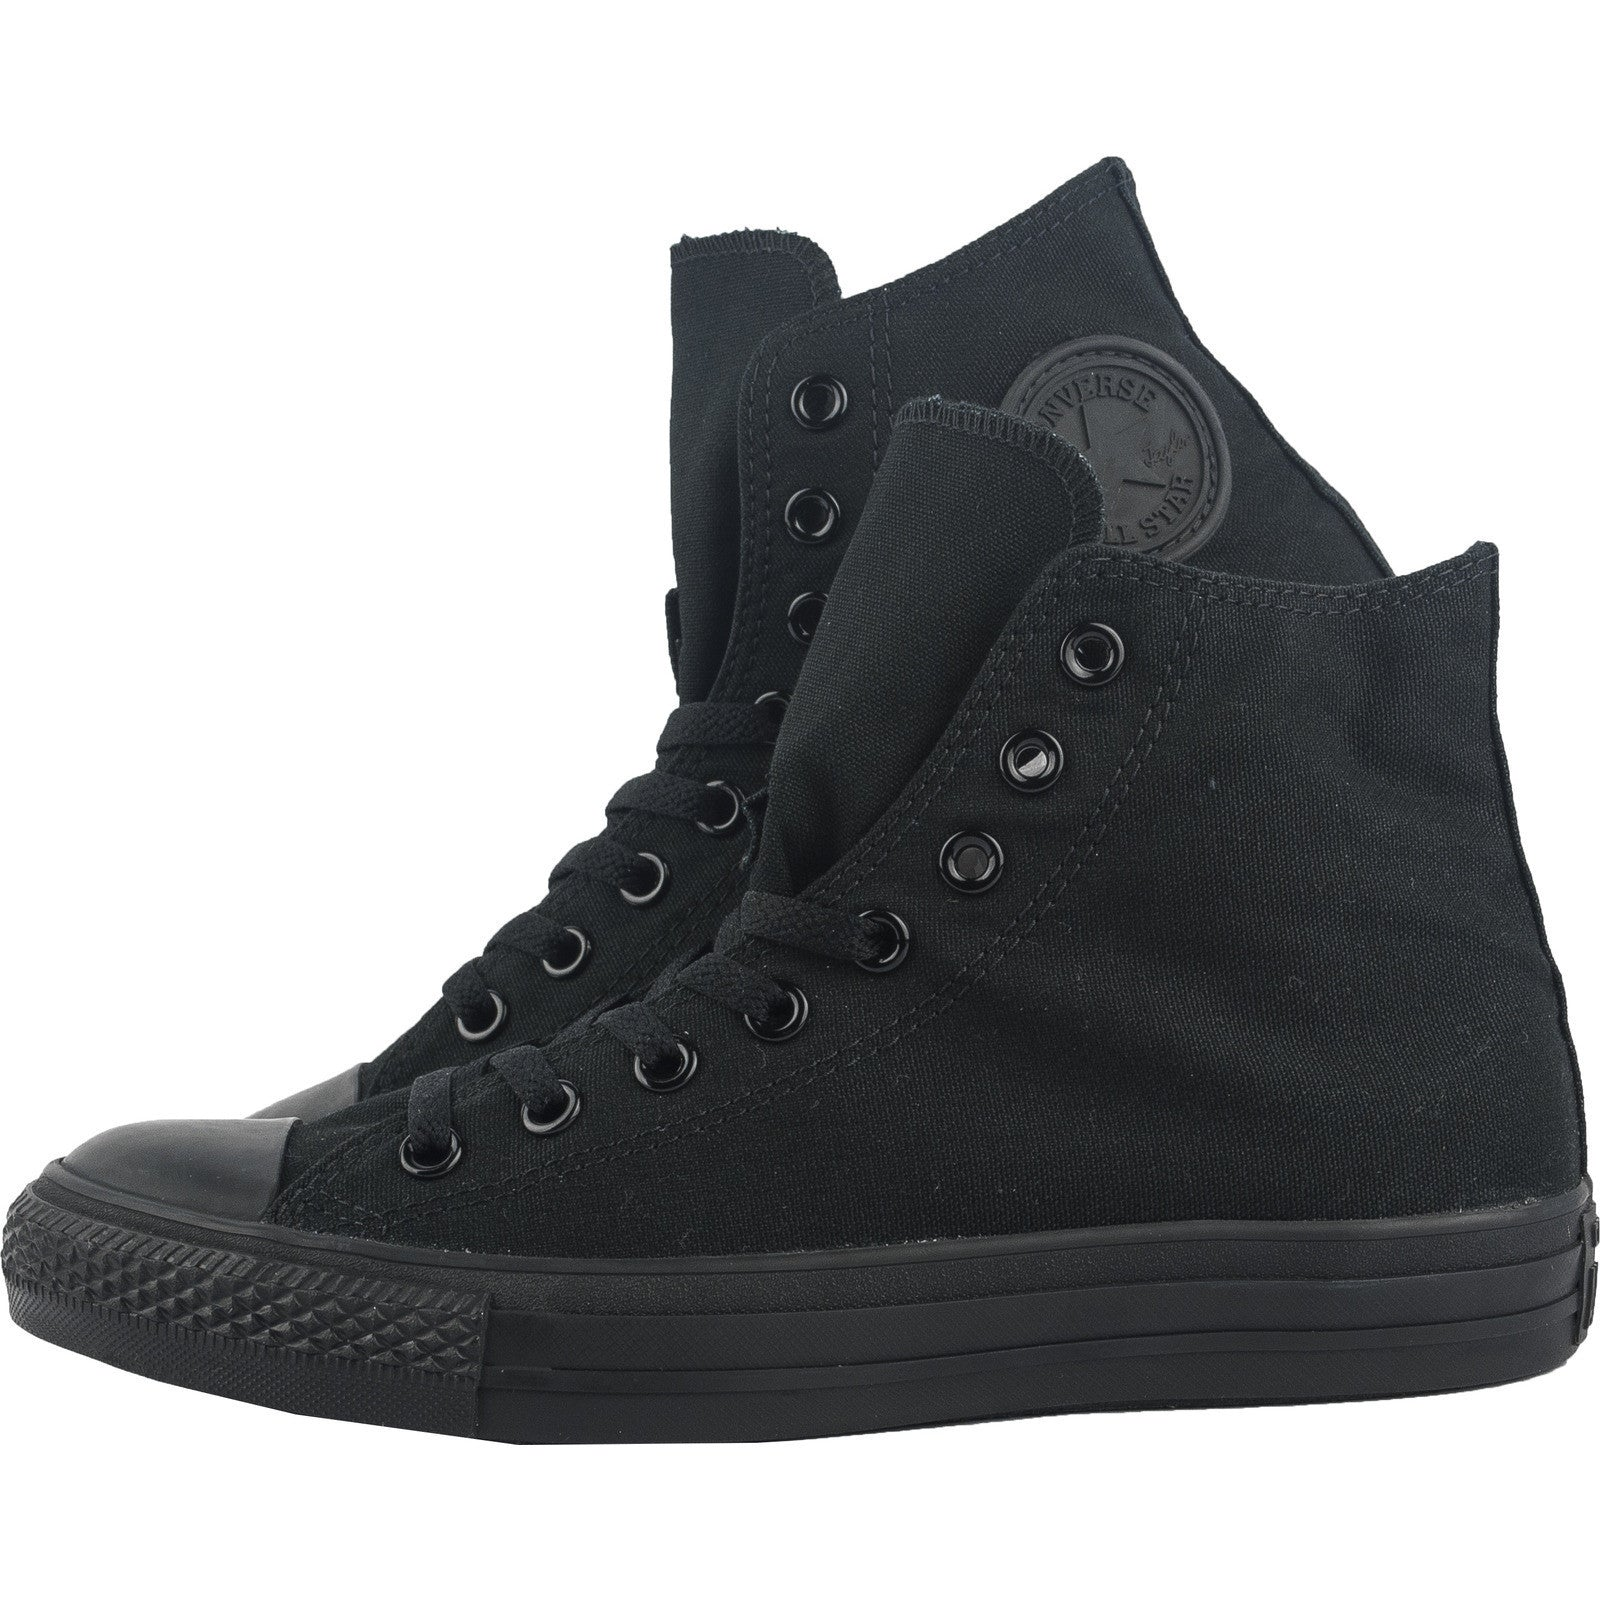 5b5b91f8ea47 Converse Classic Chuck Taylor All Star All Black Monochrome HI High M3310C  Trainer Sneaker NEW ...